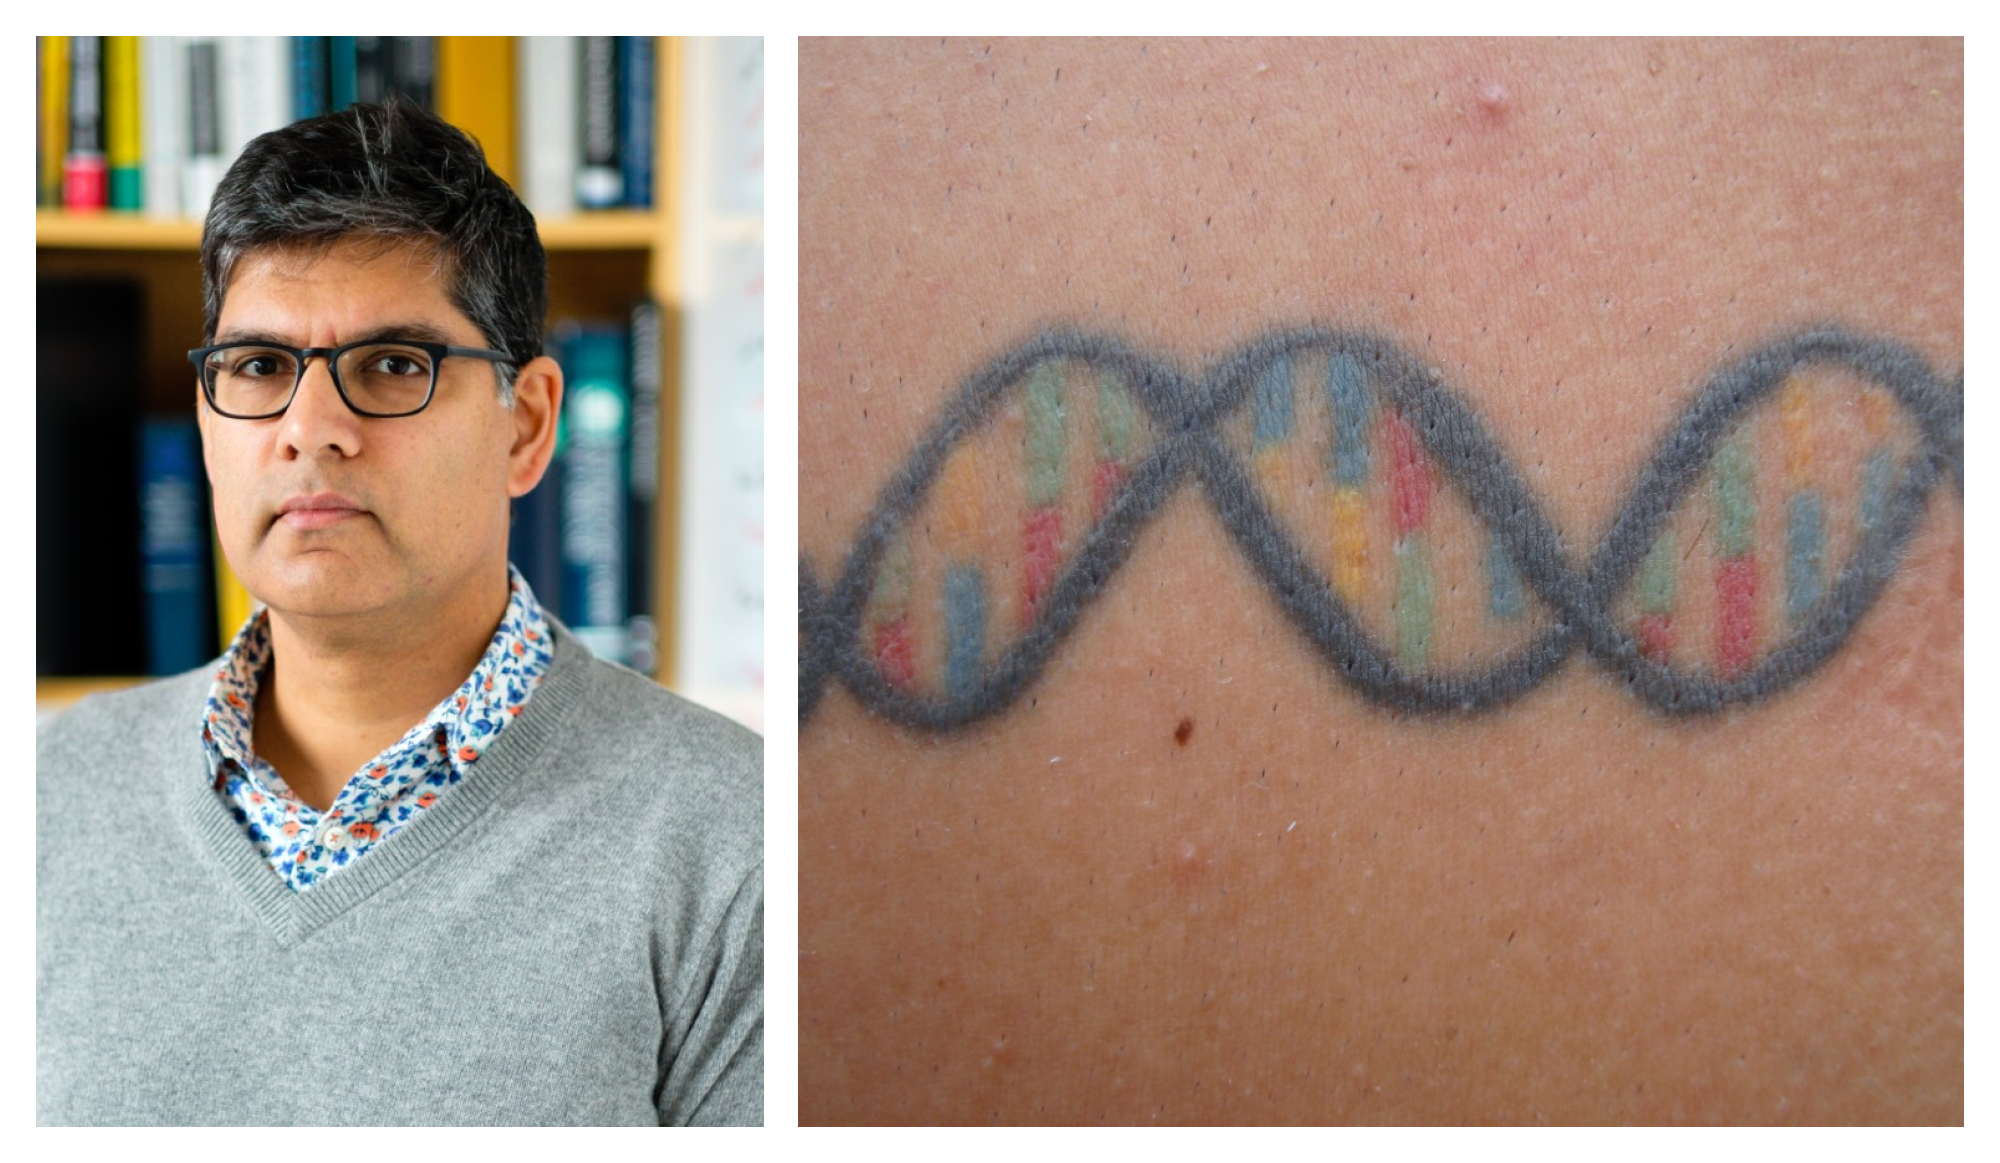 Photo caption of Sandeep Robert Datta's tattoo of a DNA double helix that spells his wife's initials